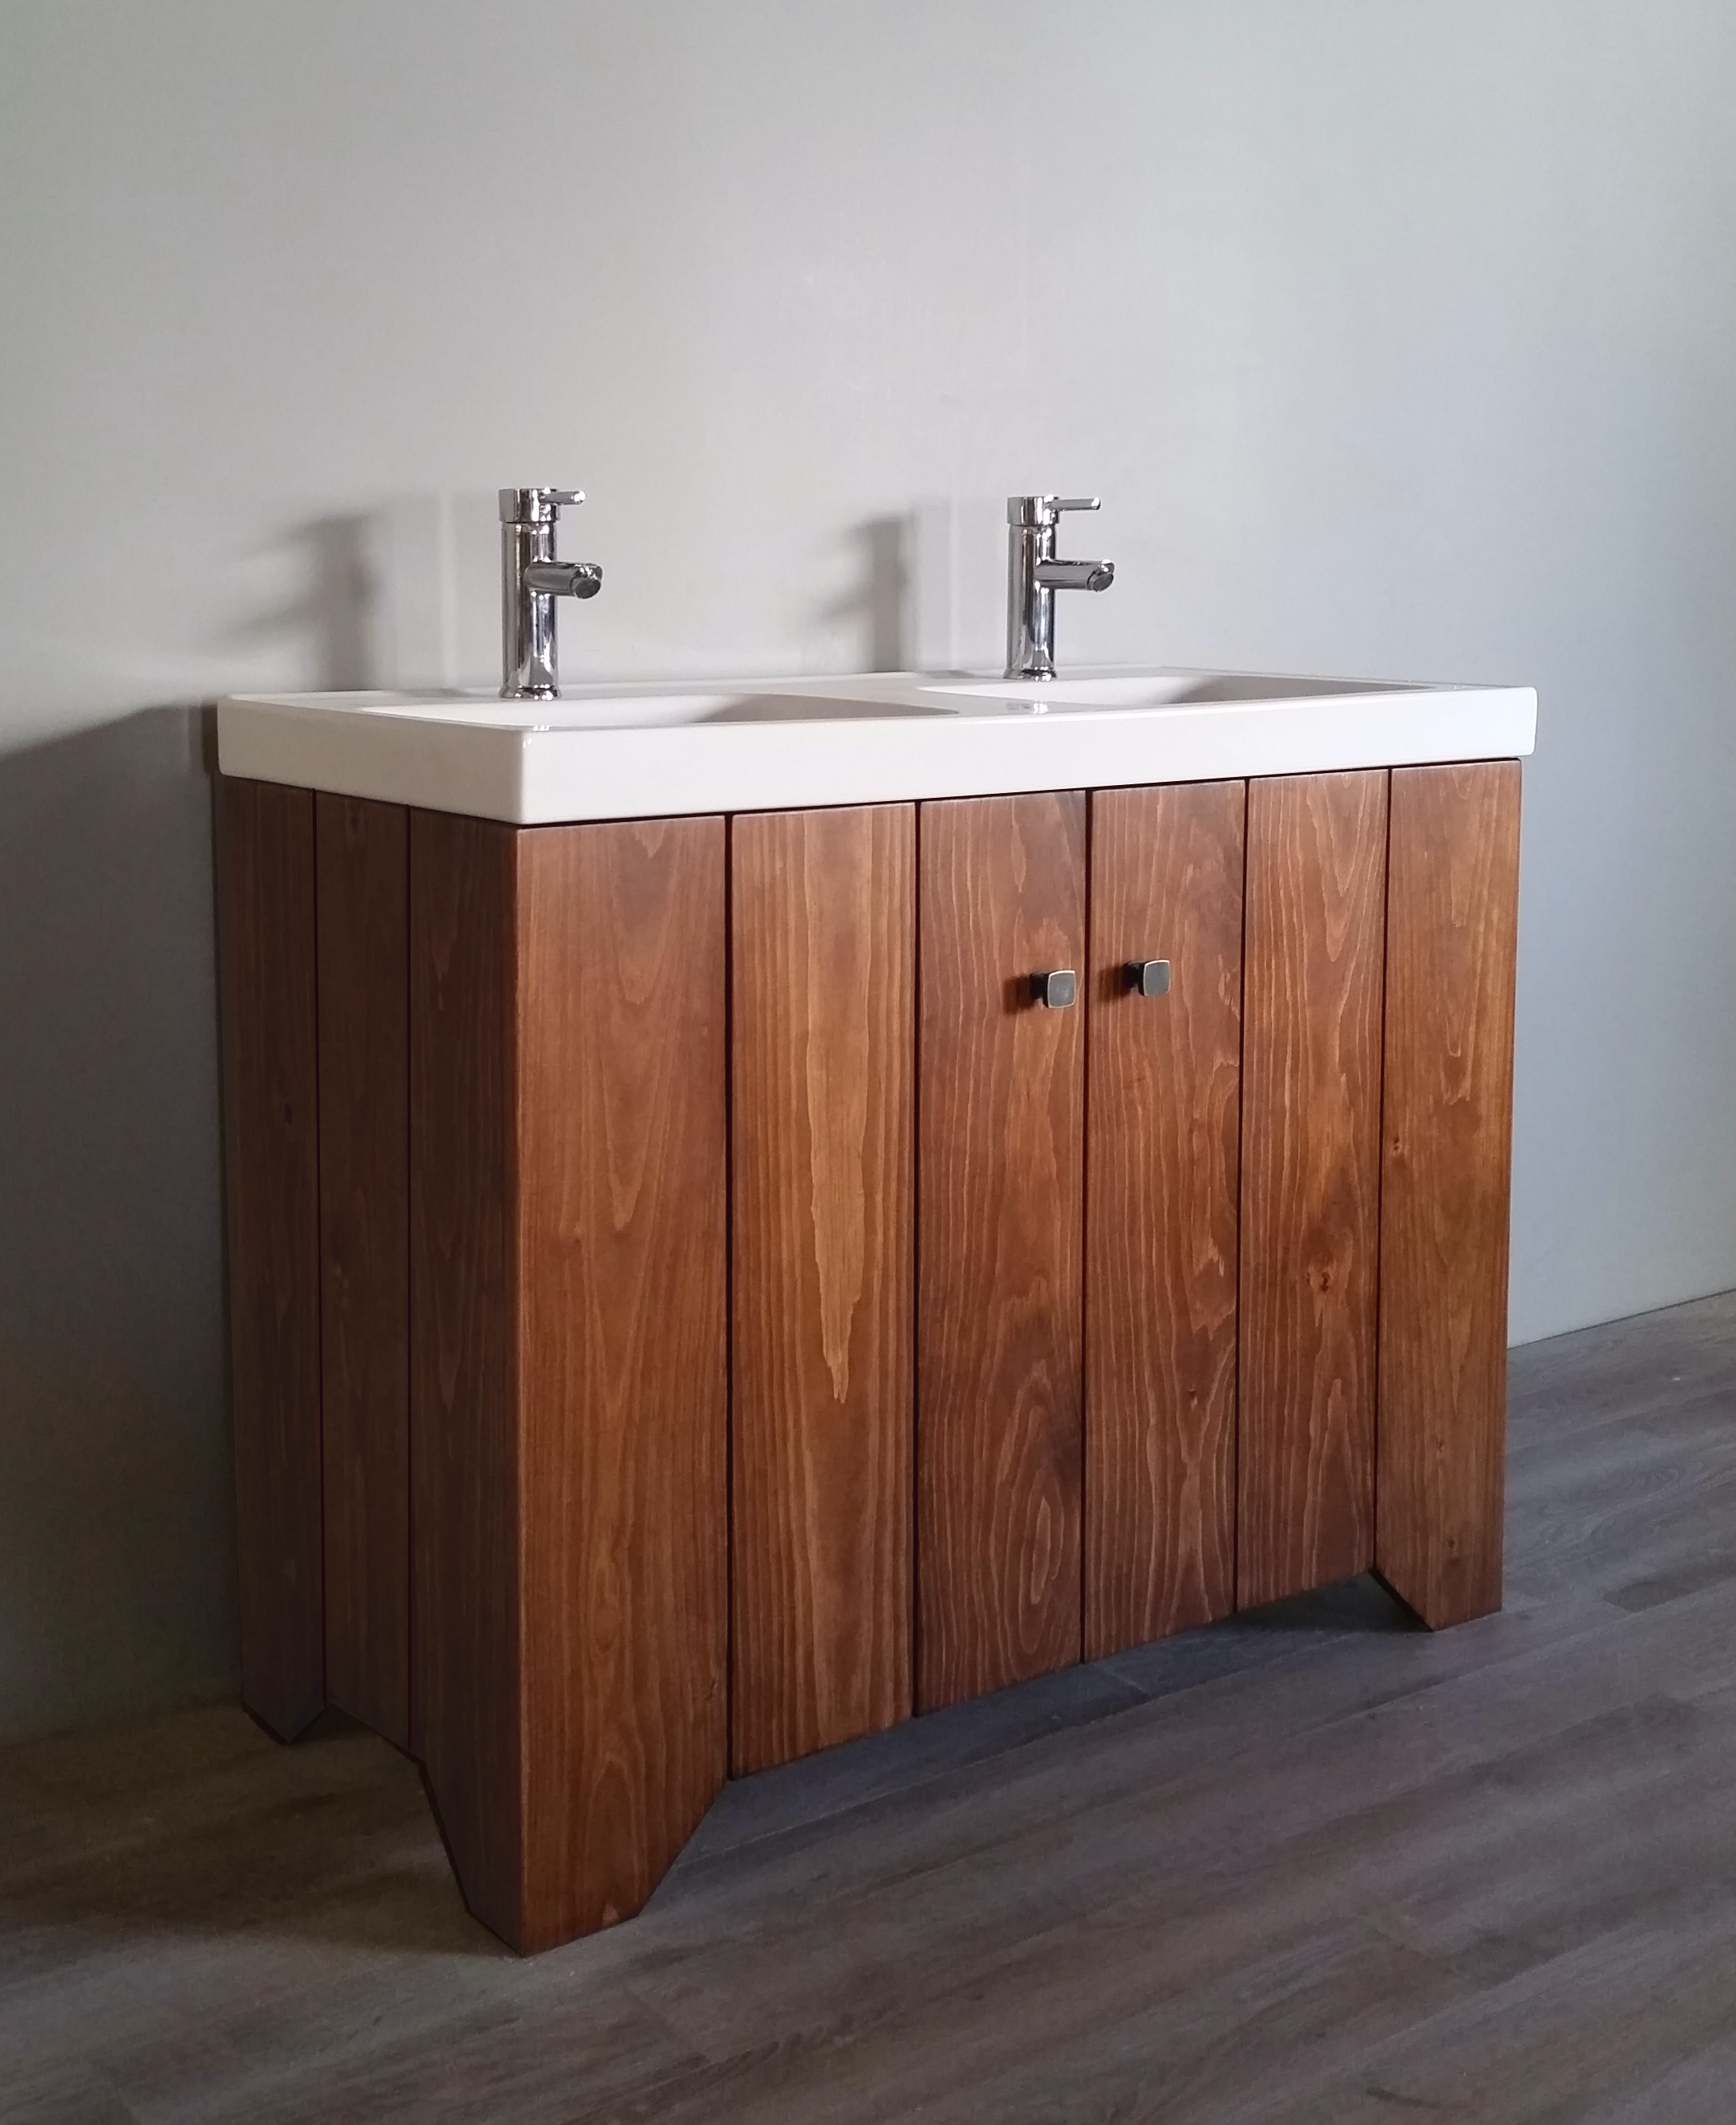 "The Stockbridge 40"" Double Vanity"